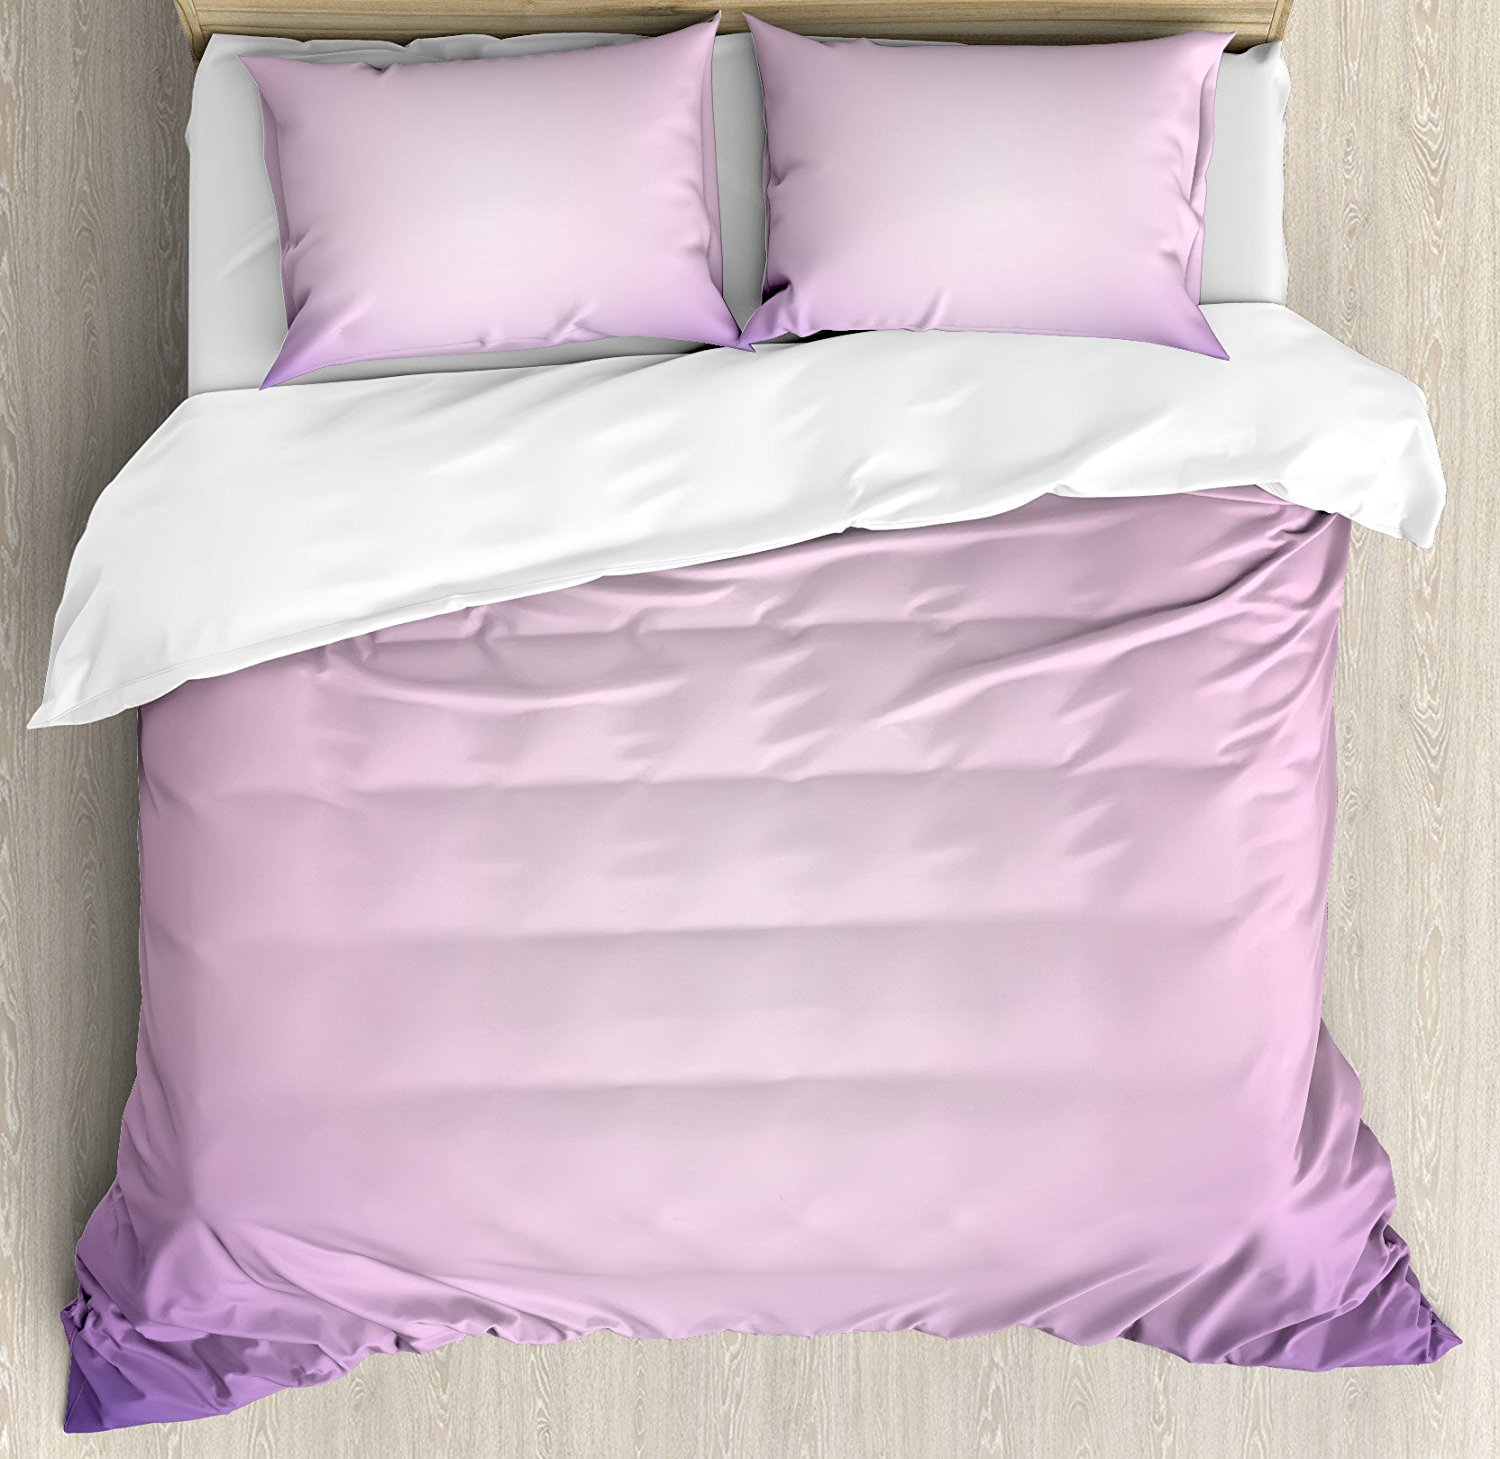 Lavender duvet cover set pink and purple ombre print modern pastel color gradient design digital art bedding set in bedding sets from home garden on